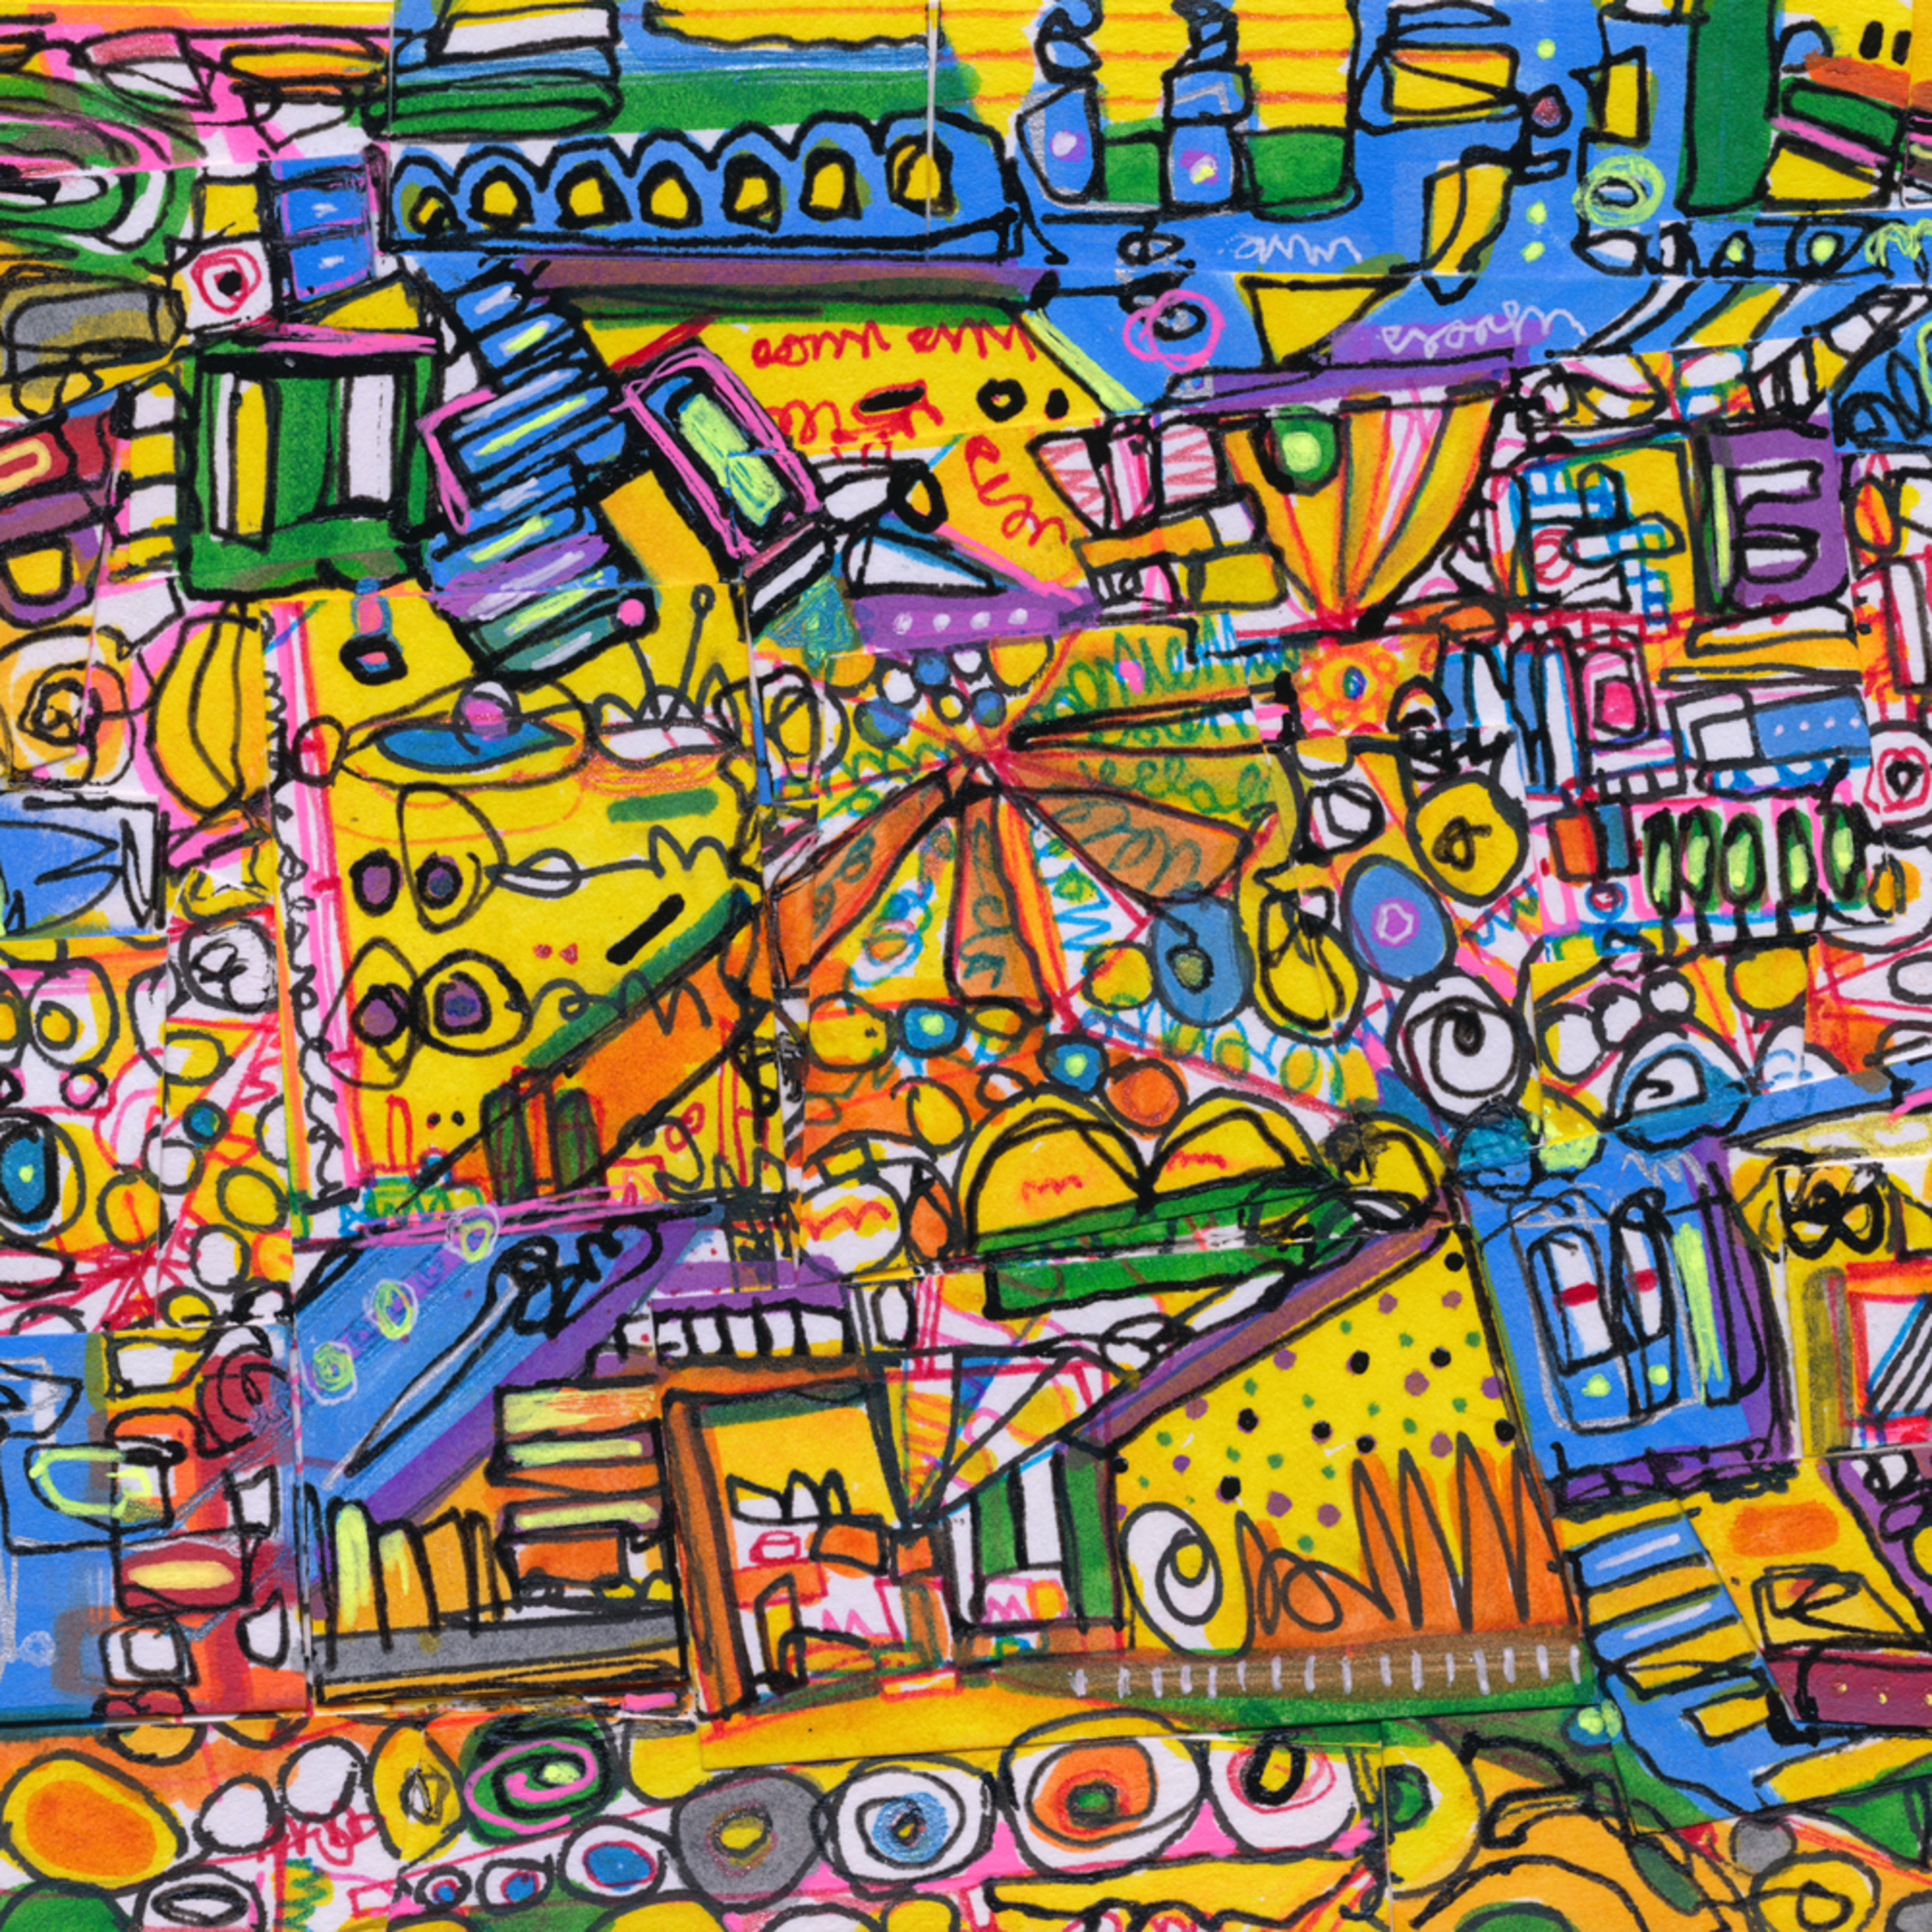 Art world abstract painting joseph meloy wet paint nyc chtz6q